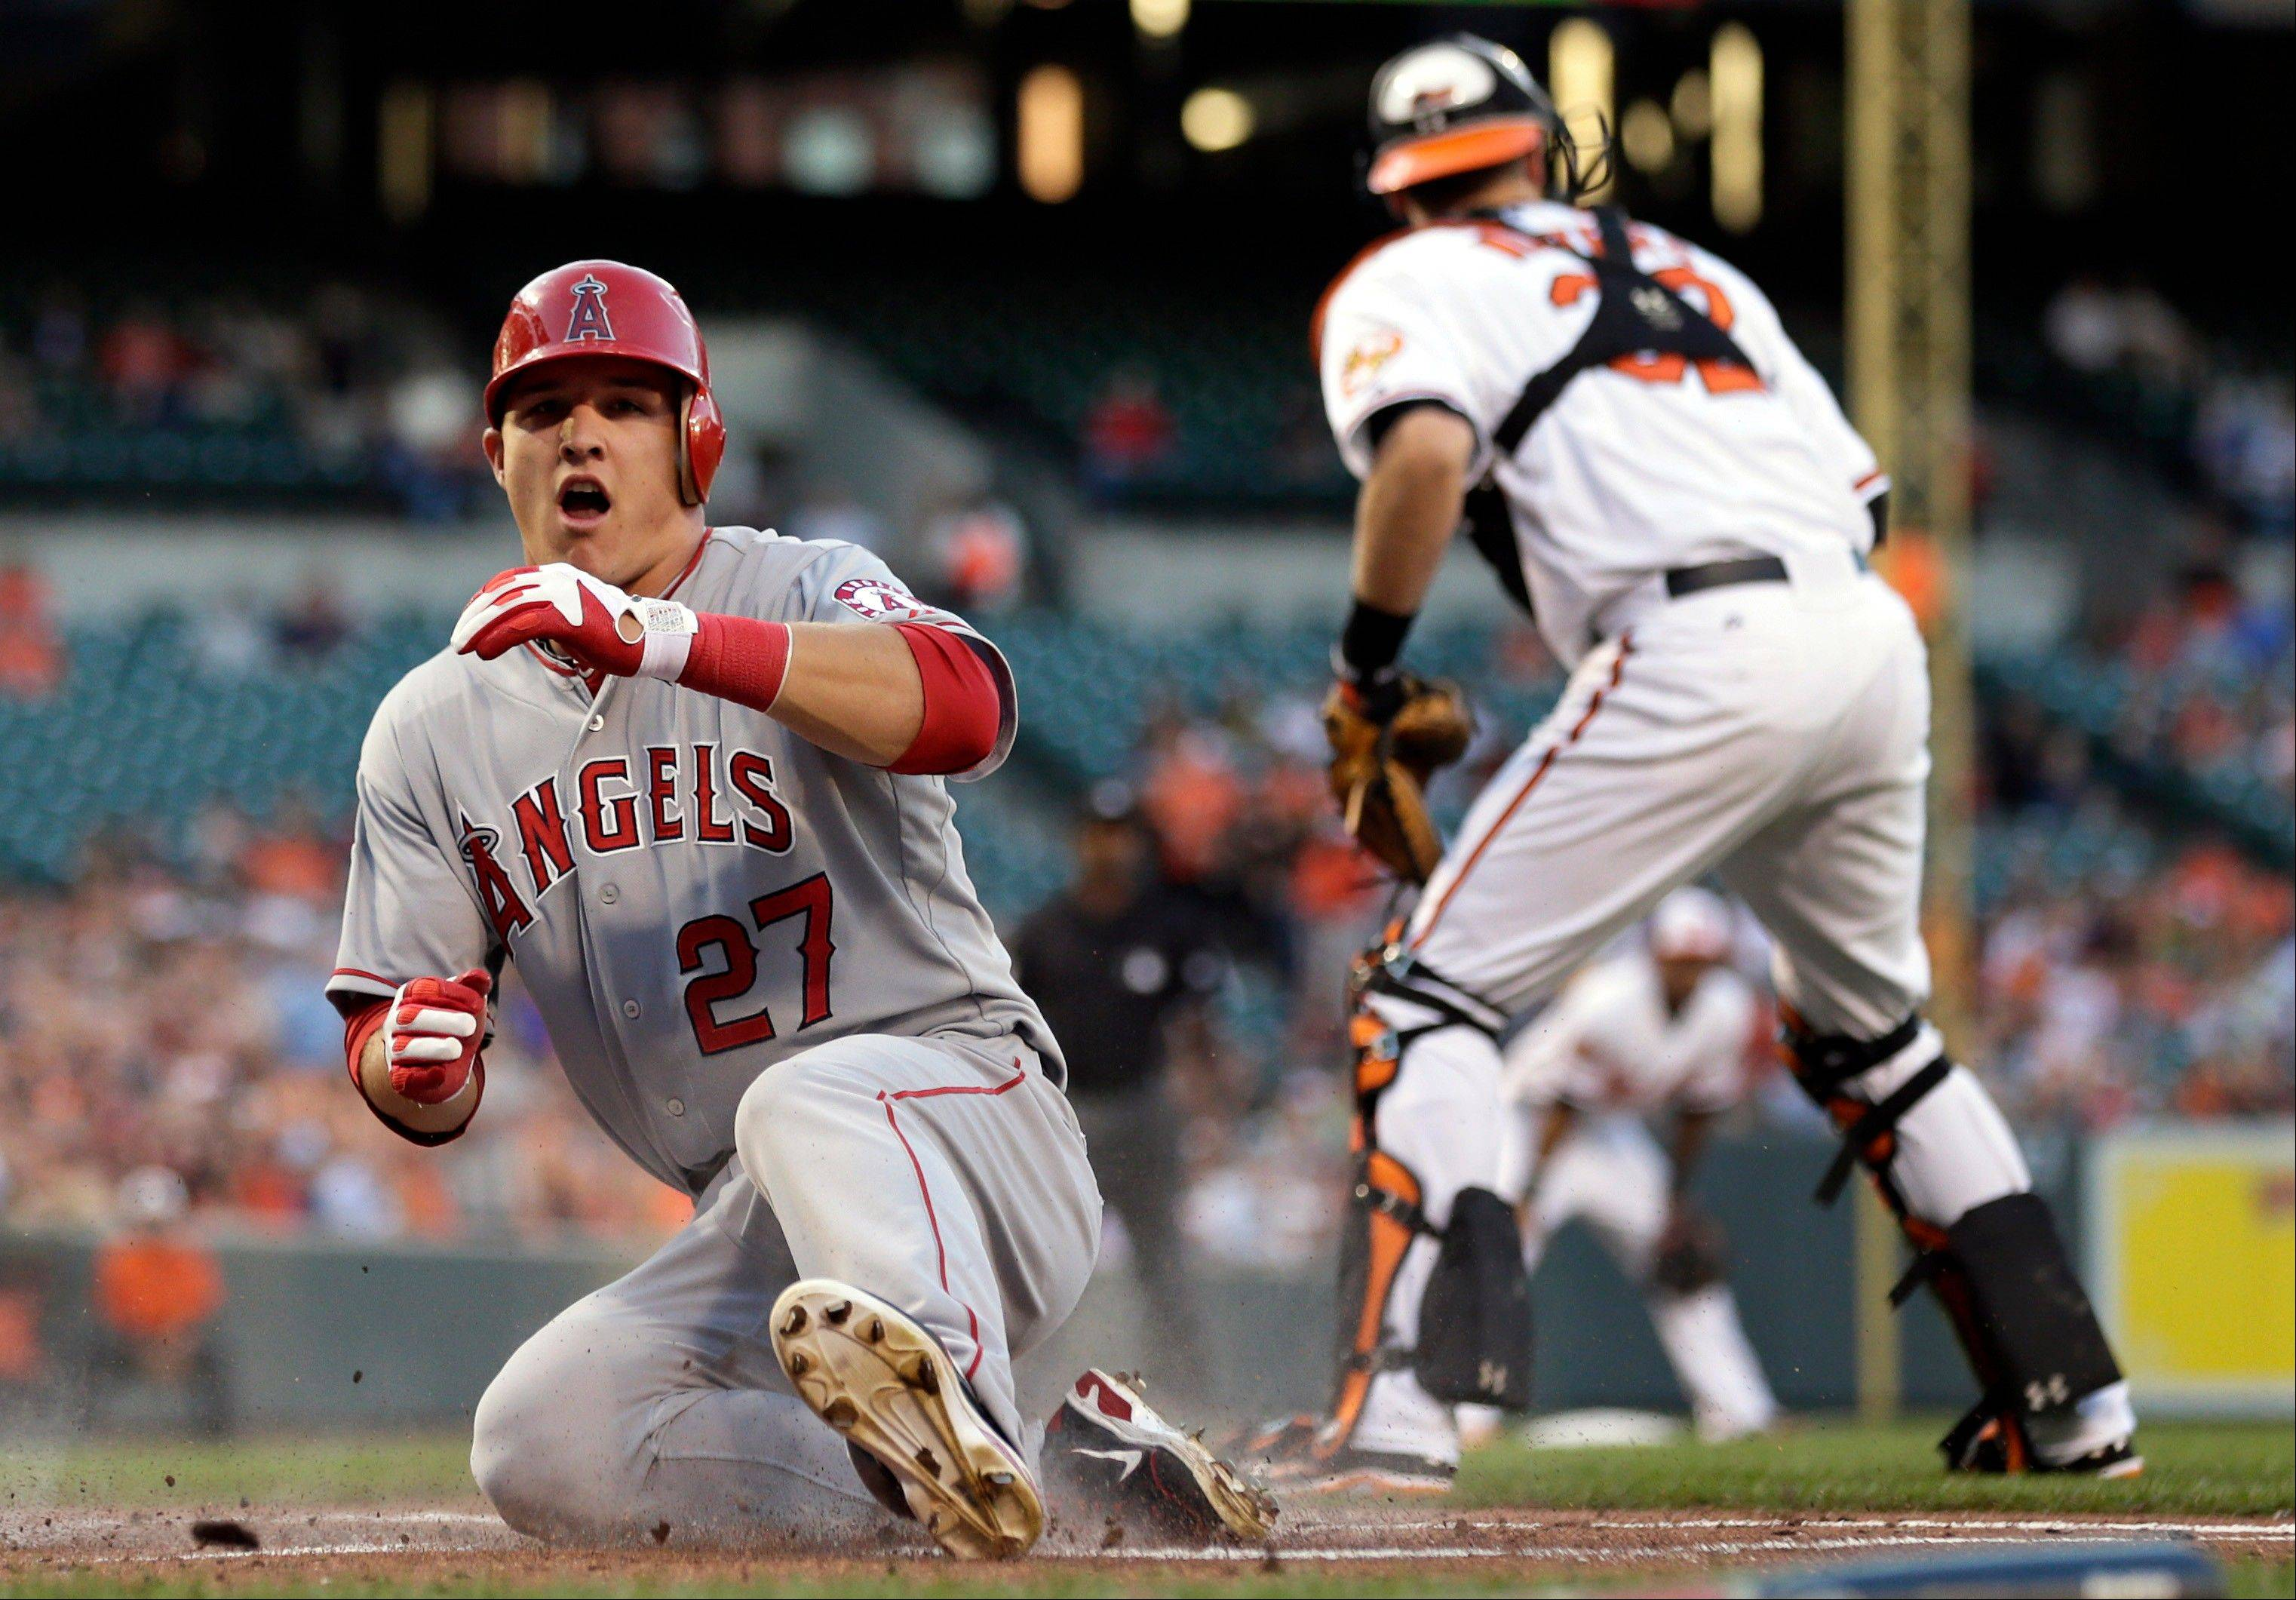 Angels superstar Mike Trout said that players caught using performance-enhancing drugs should be banned from baseball for life. Mike Imrem counters that the players union should take the lead in designing a drug policy and being responsible for enforcing it.